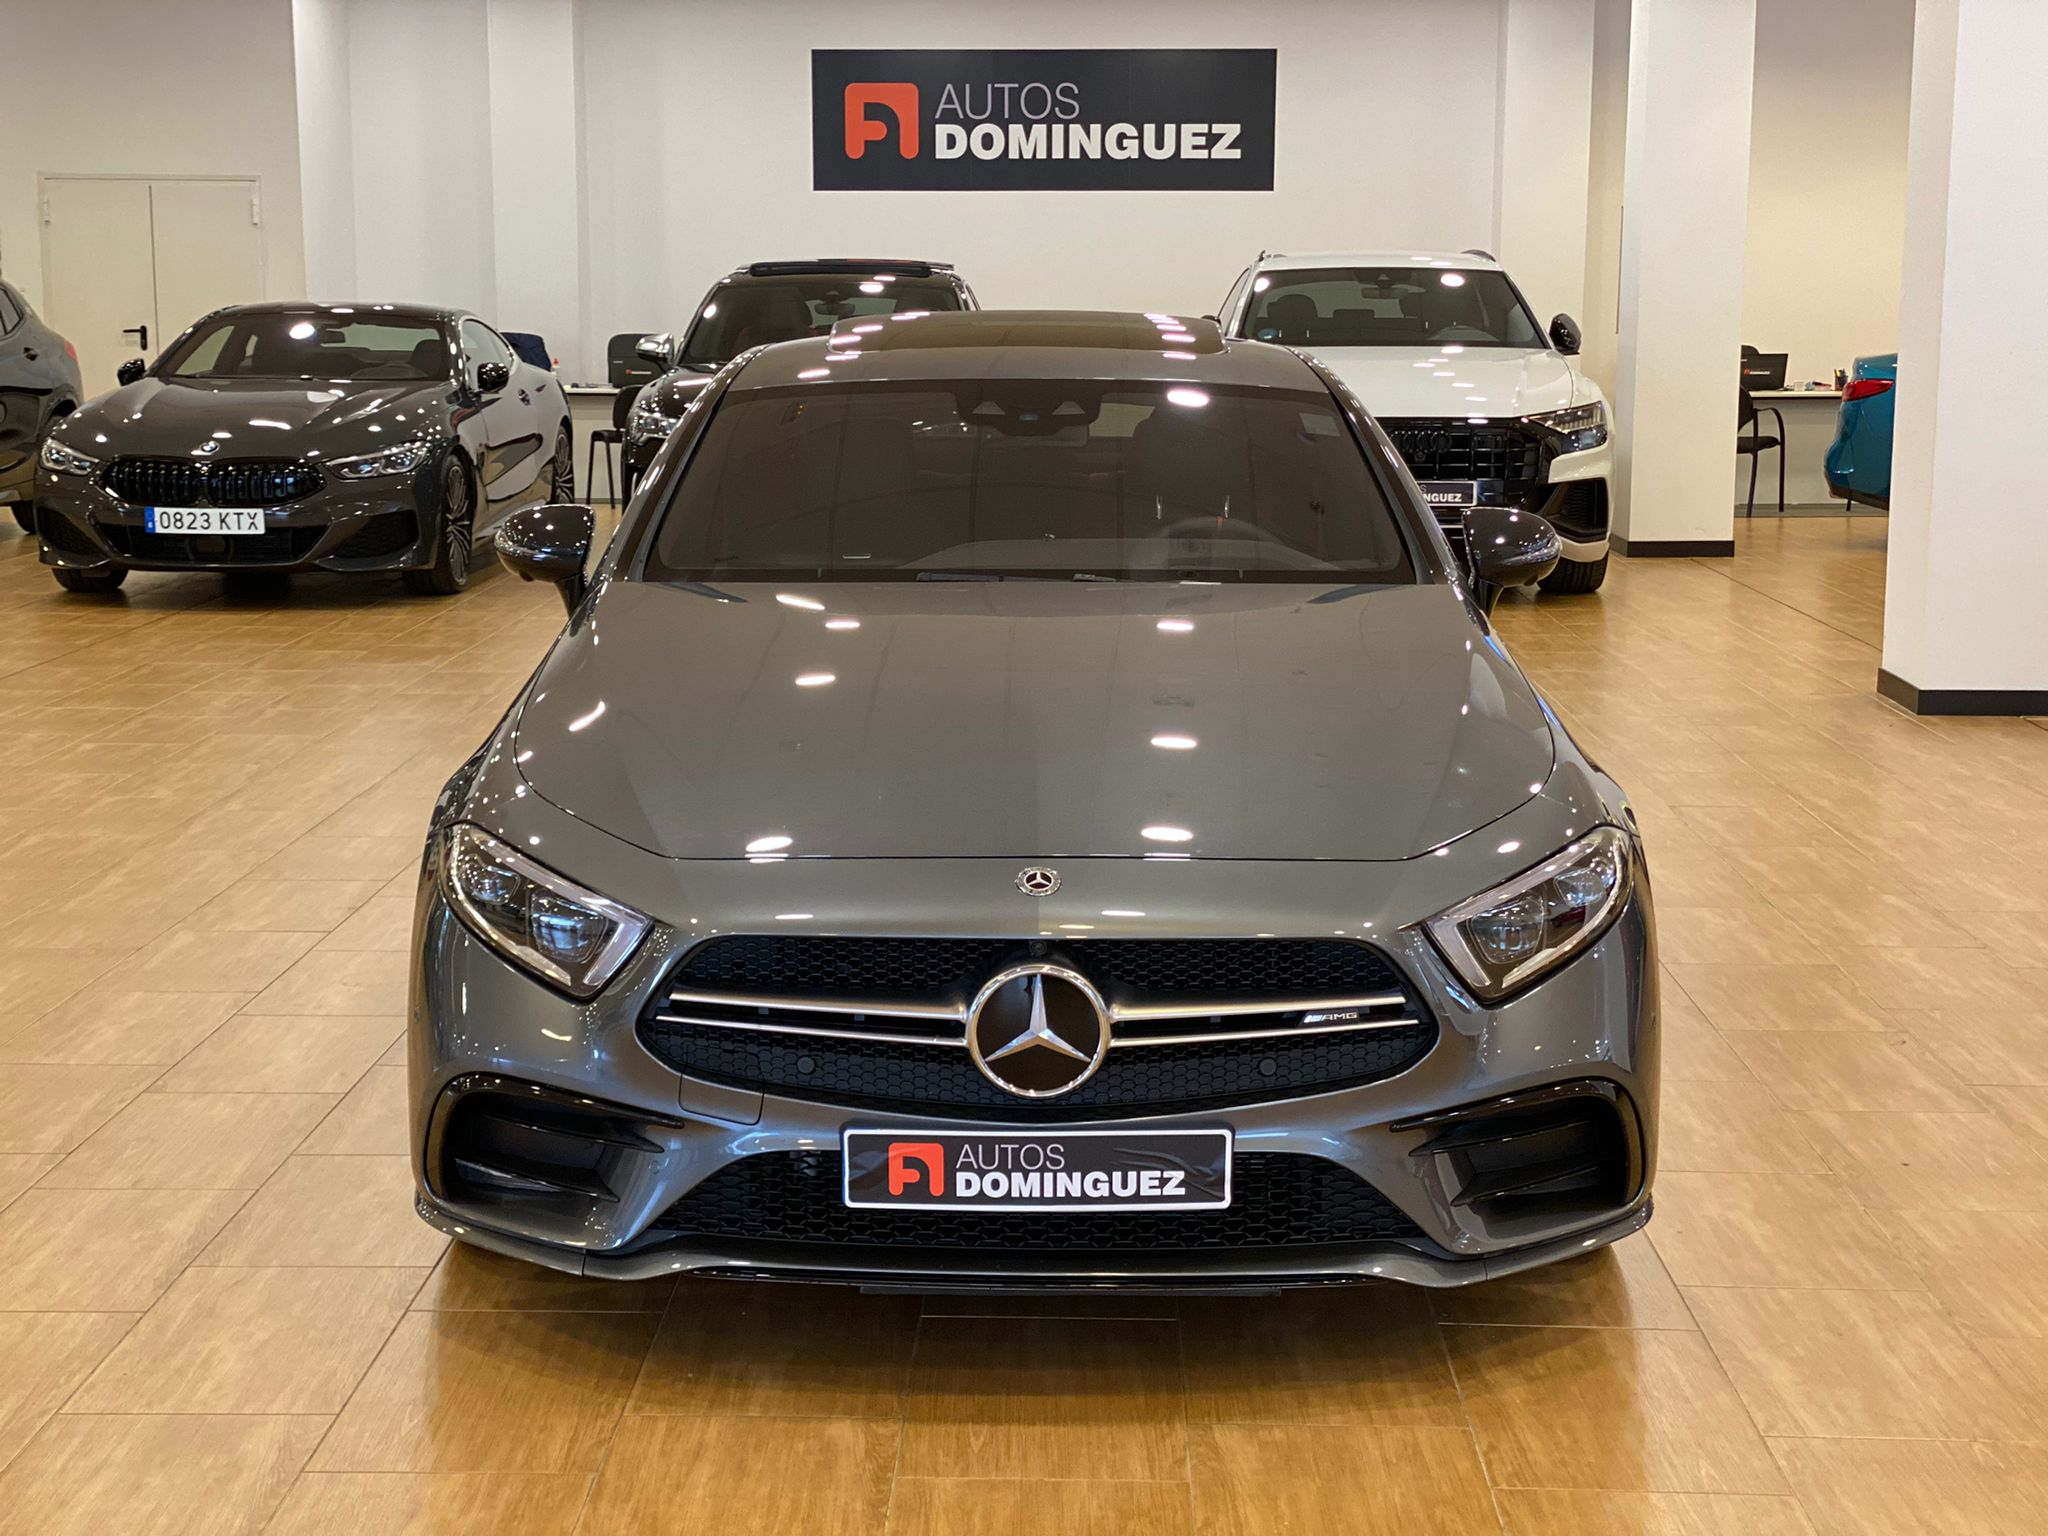 MERCEDES-AMG CLS 53 EQ 435 CV 4MATIC+ 2